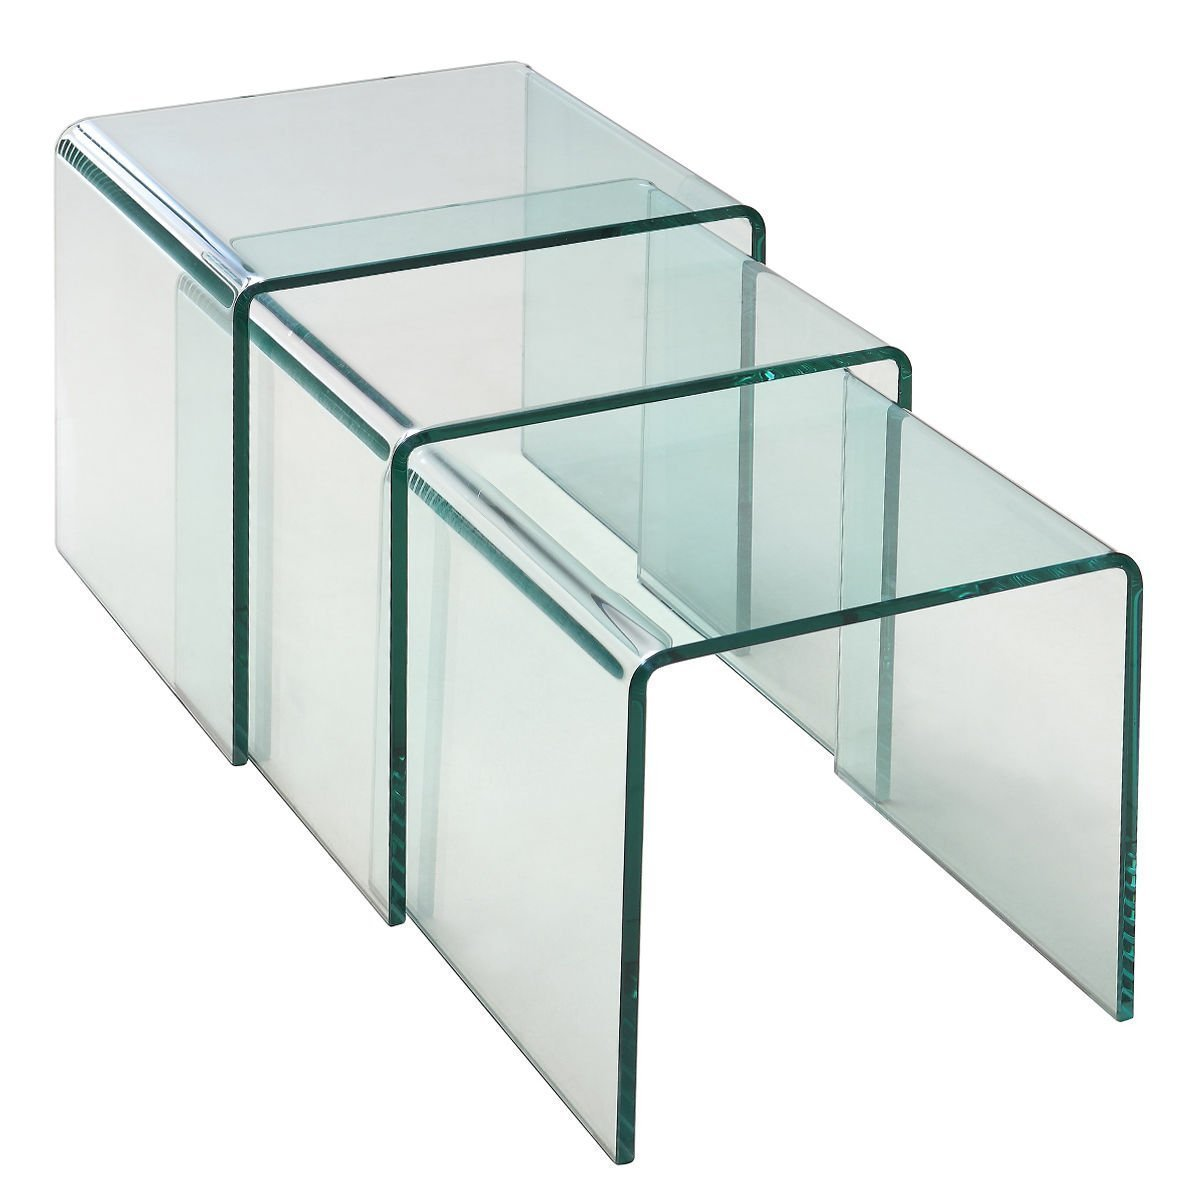 Leick Favorite Finds End Table The awesome image is other parts of Choosing End Tables post which is ...